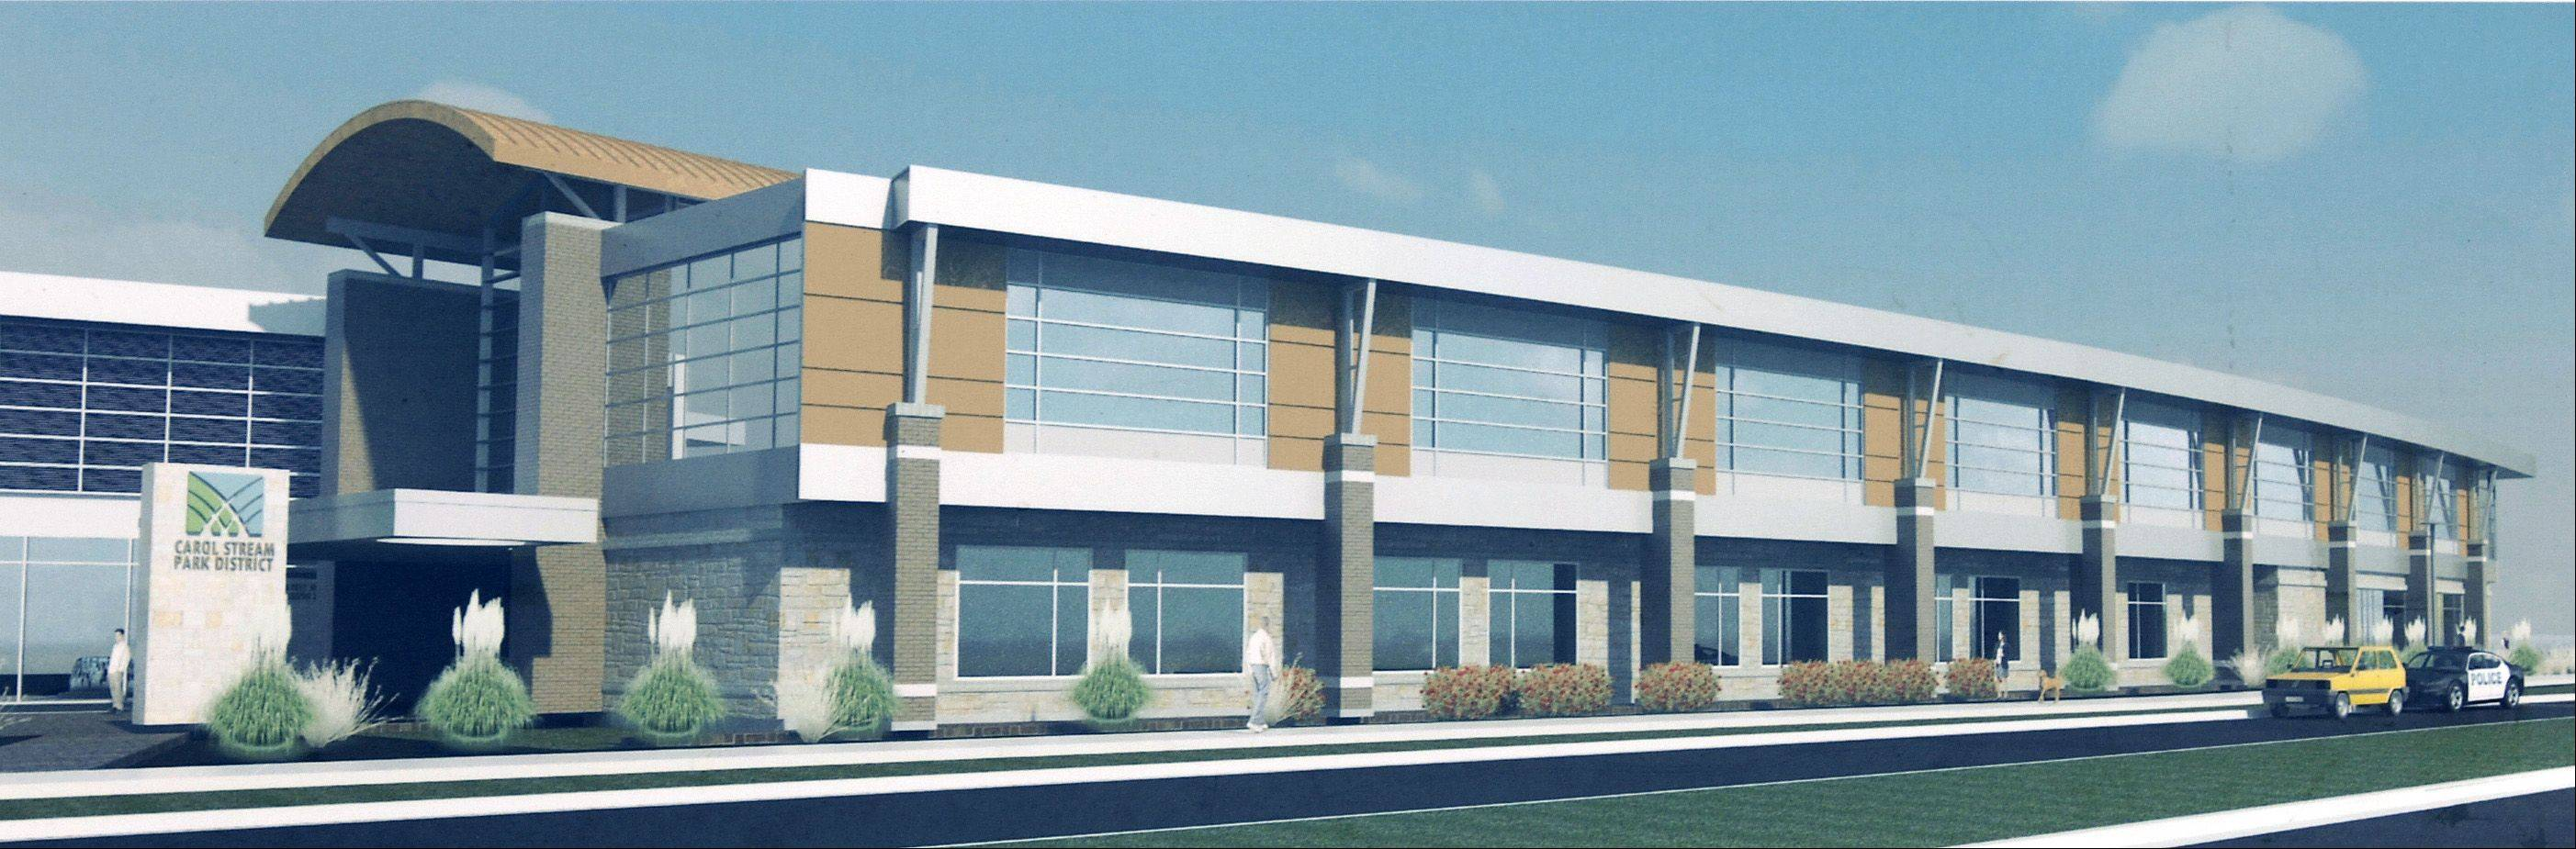 The Carol Stream Park District board is expected to pick a name this fall for the $18 million recreation center now under construction at Gary Avenue and Fountain View Drive in the Town Center.